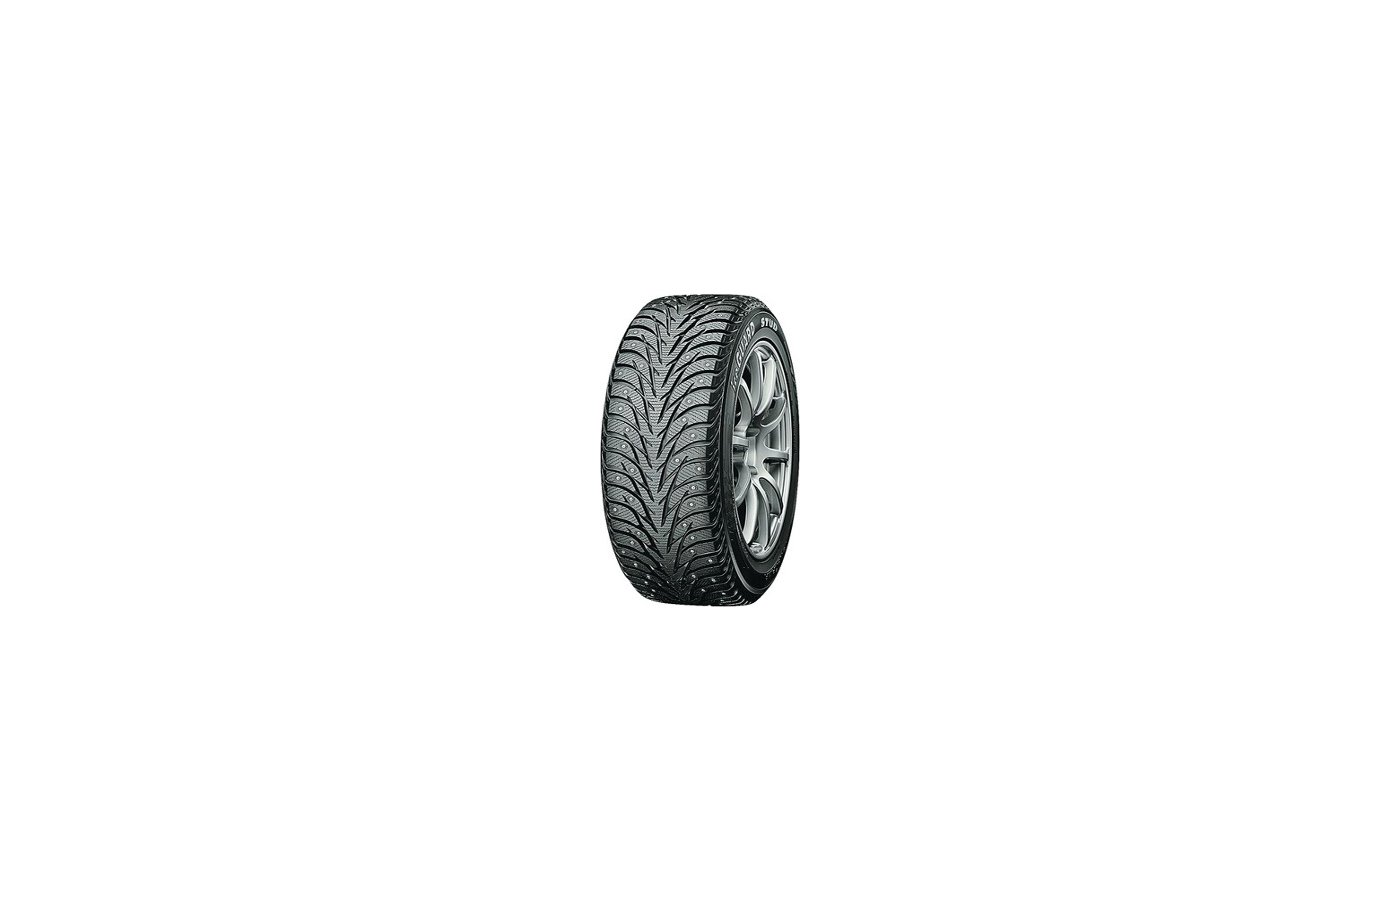 Шина Yokohama Ice Guard IG35 Plus 255/55 R18 TL 109T XL шип